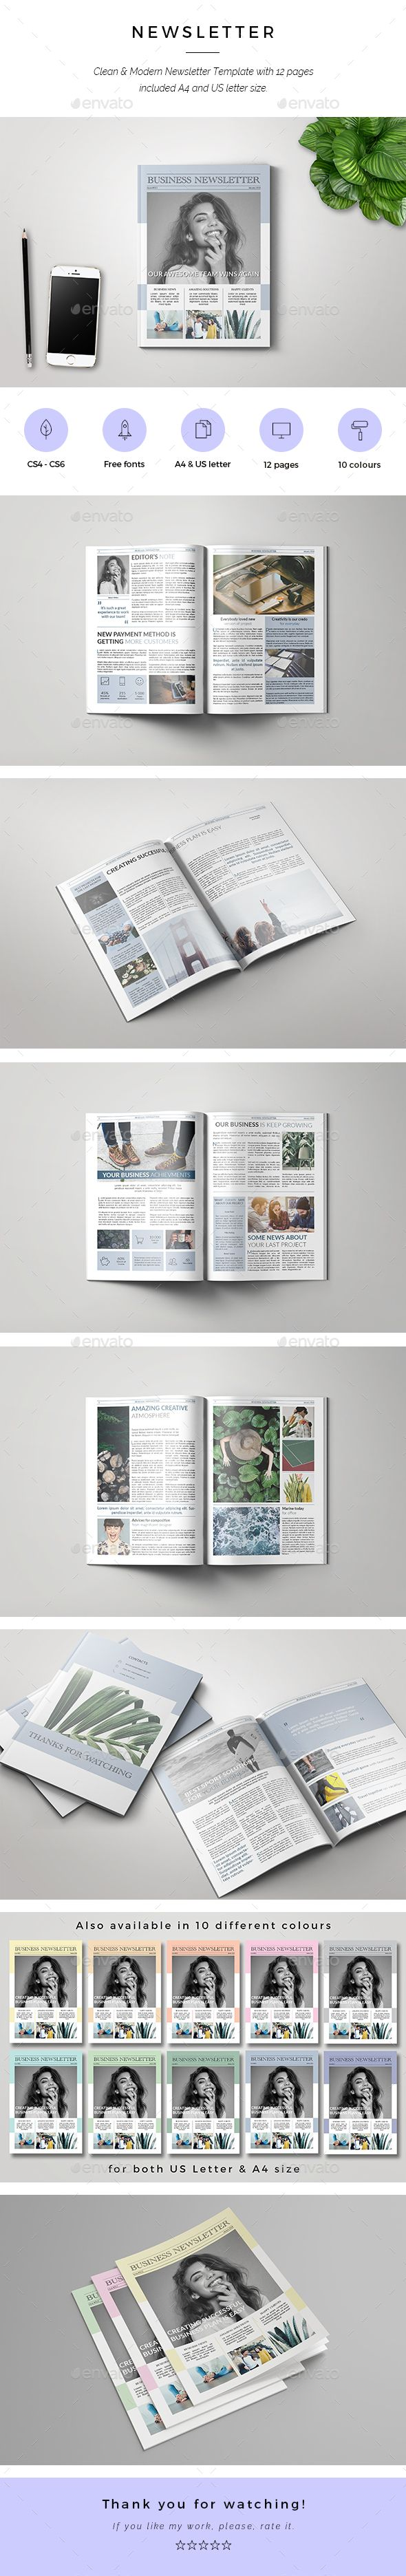 Business Newsletter 316 best Newsletter Template images